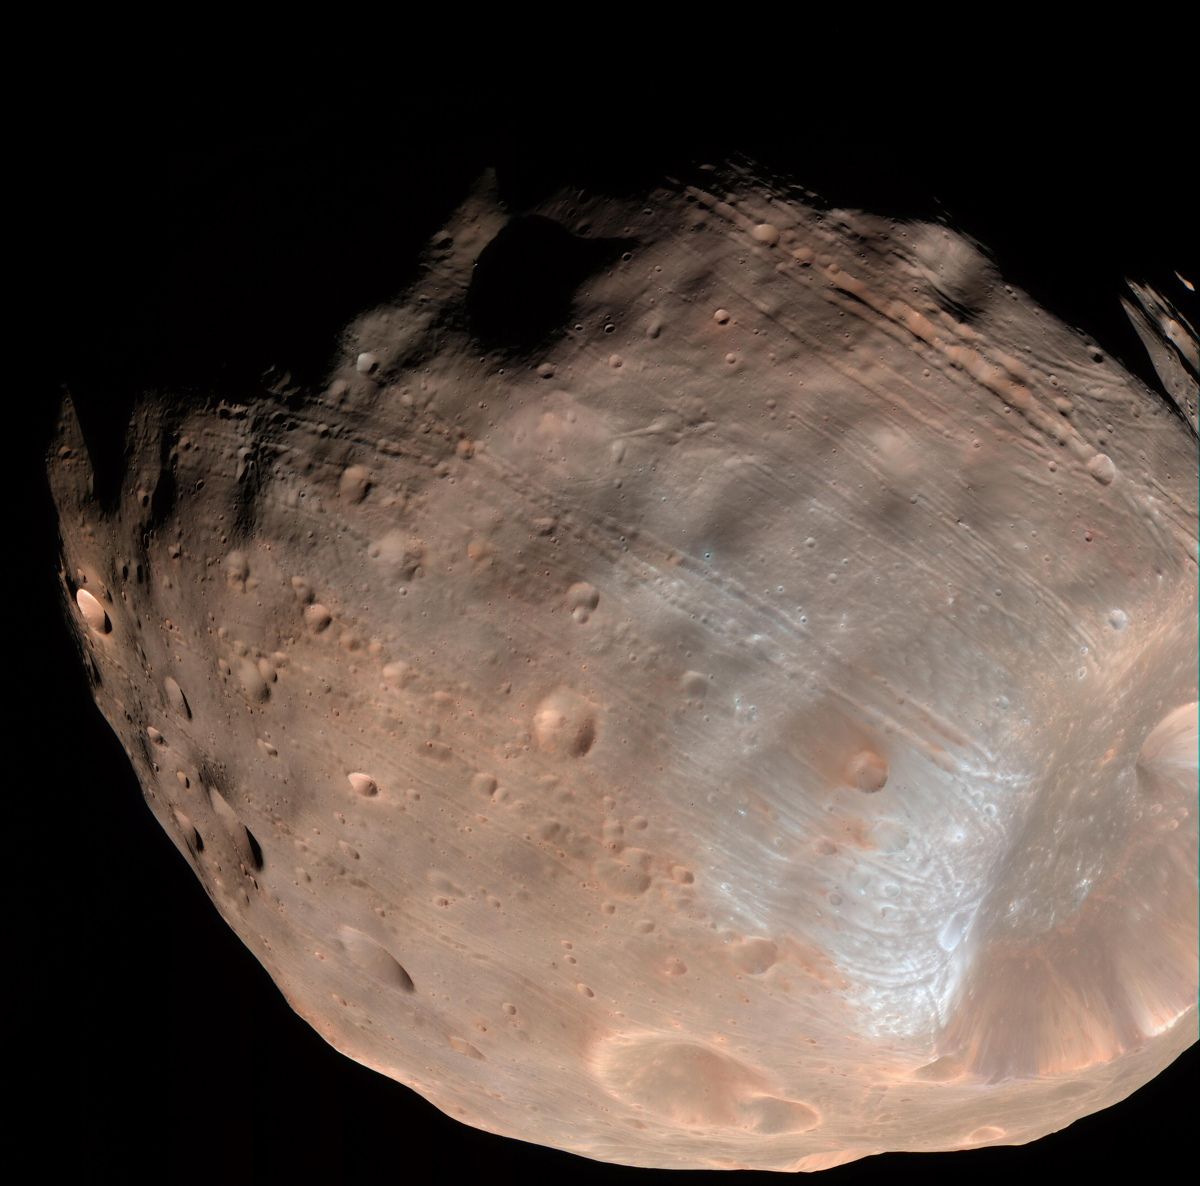 Grooves on Mars' Moon Phobos